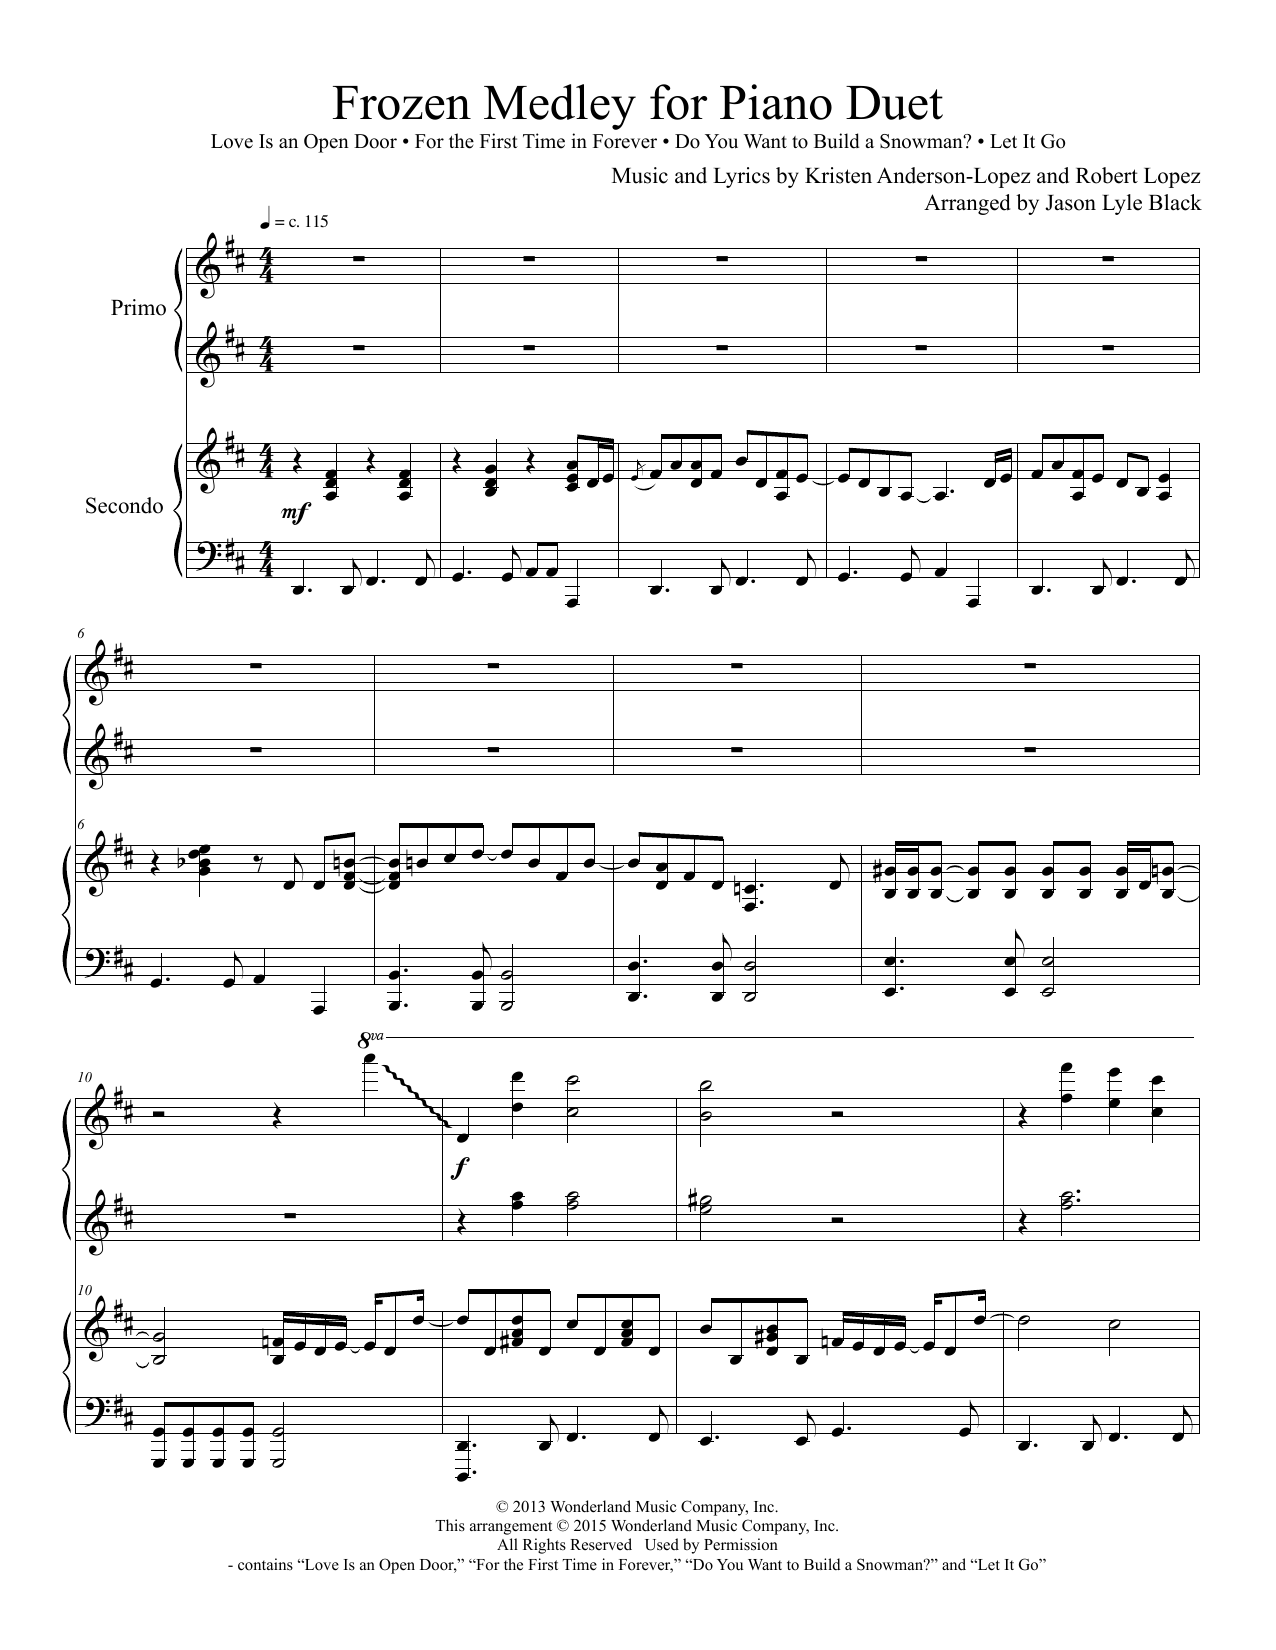 Frozen Piano Medley Arr Jason Lyle Black Sheet Music Kristen Anderson Lopez Robert Lopez Piano Duet Sheet Music Digital Sheet Music Christmas Sheet Music